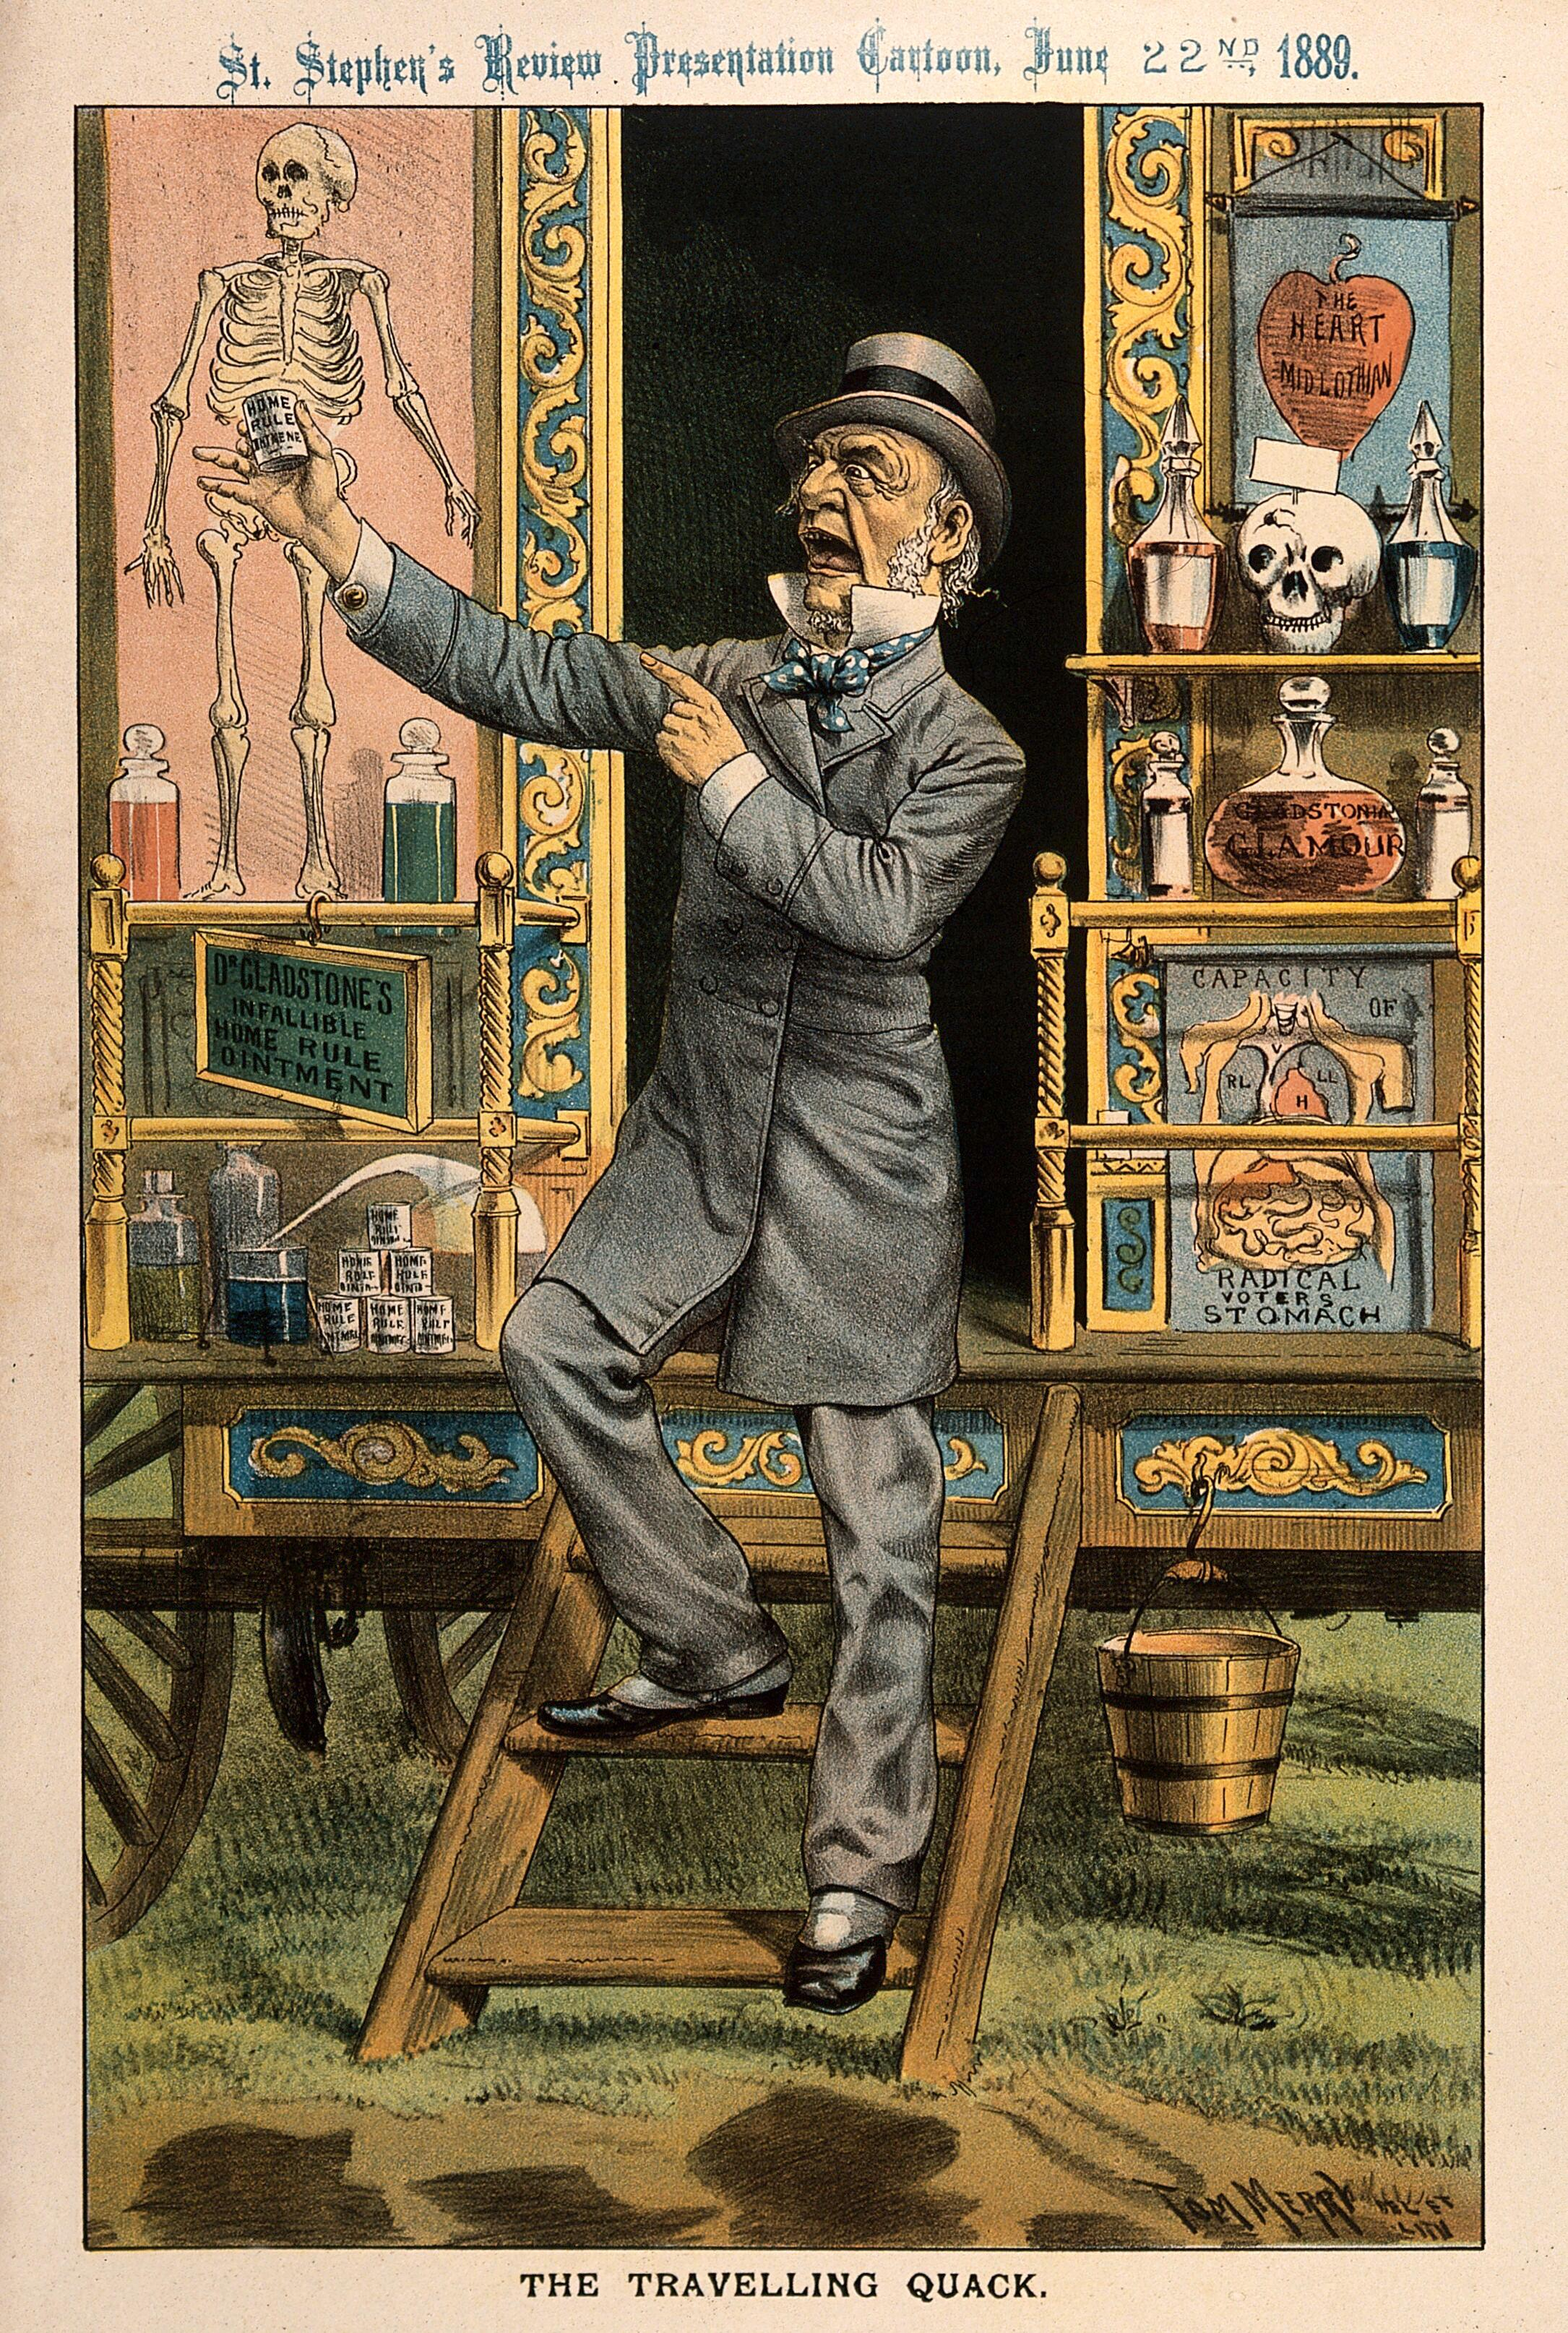 W.E. Gladstone as a quack doctor selling remedies from his ...